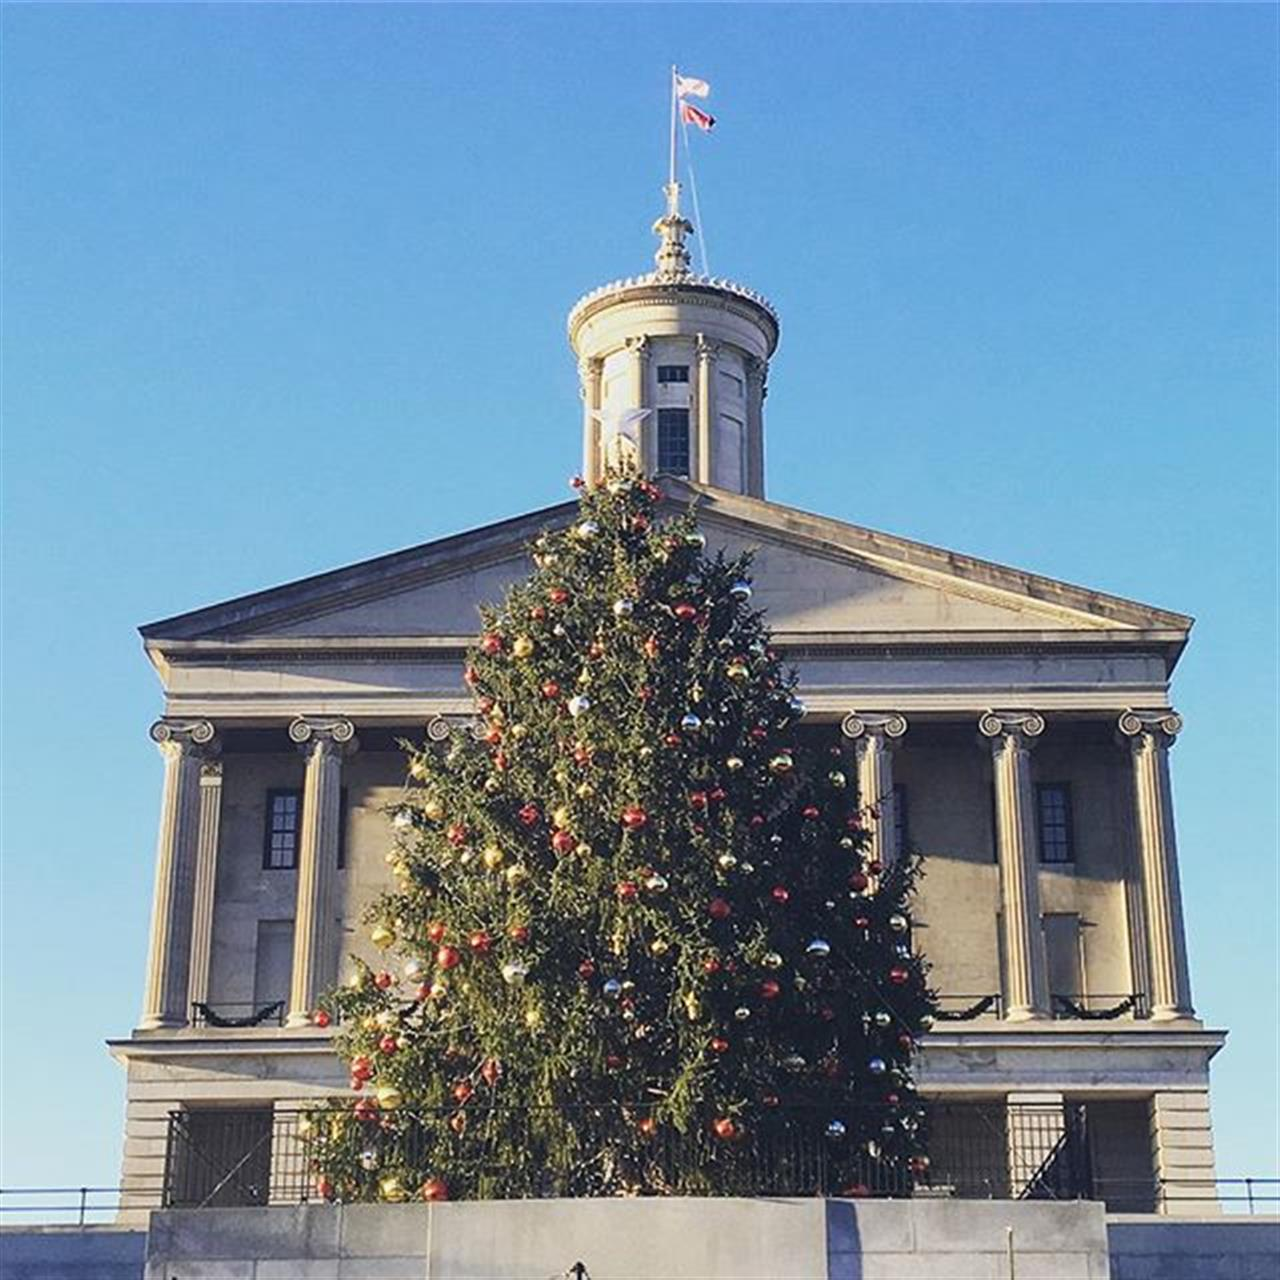 The Christmas tree at the State Capitol Building is officially up! ?? #leadingrelocal #parksrealty #statecapitol #downtownnashville